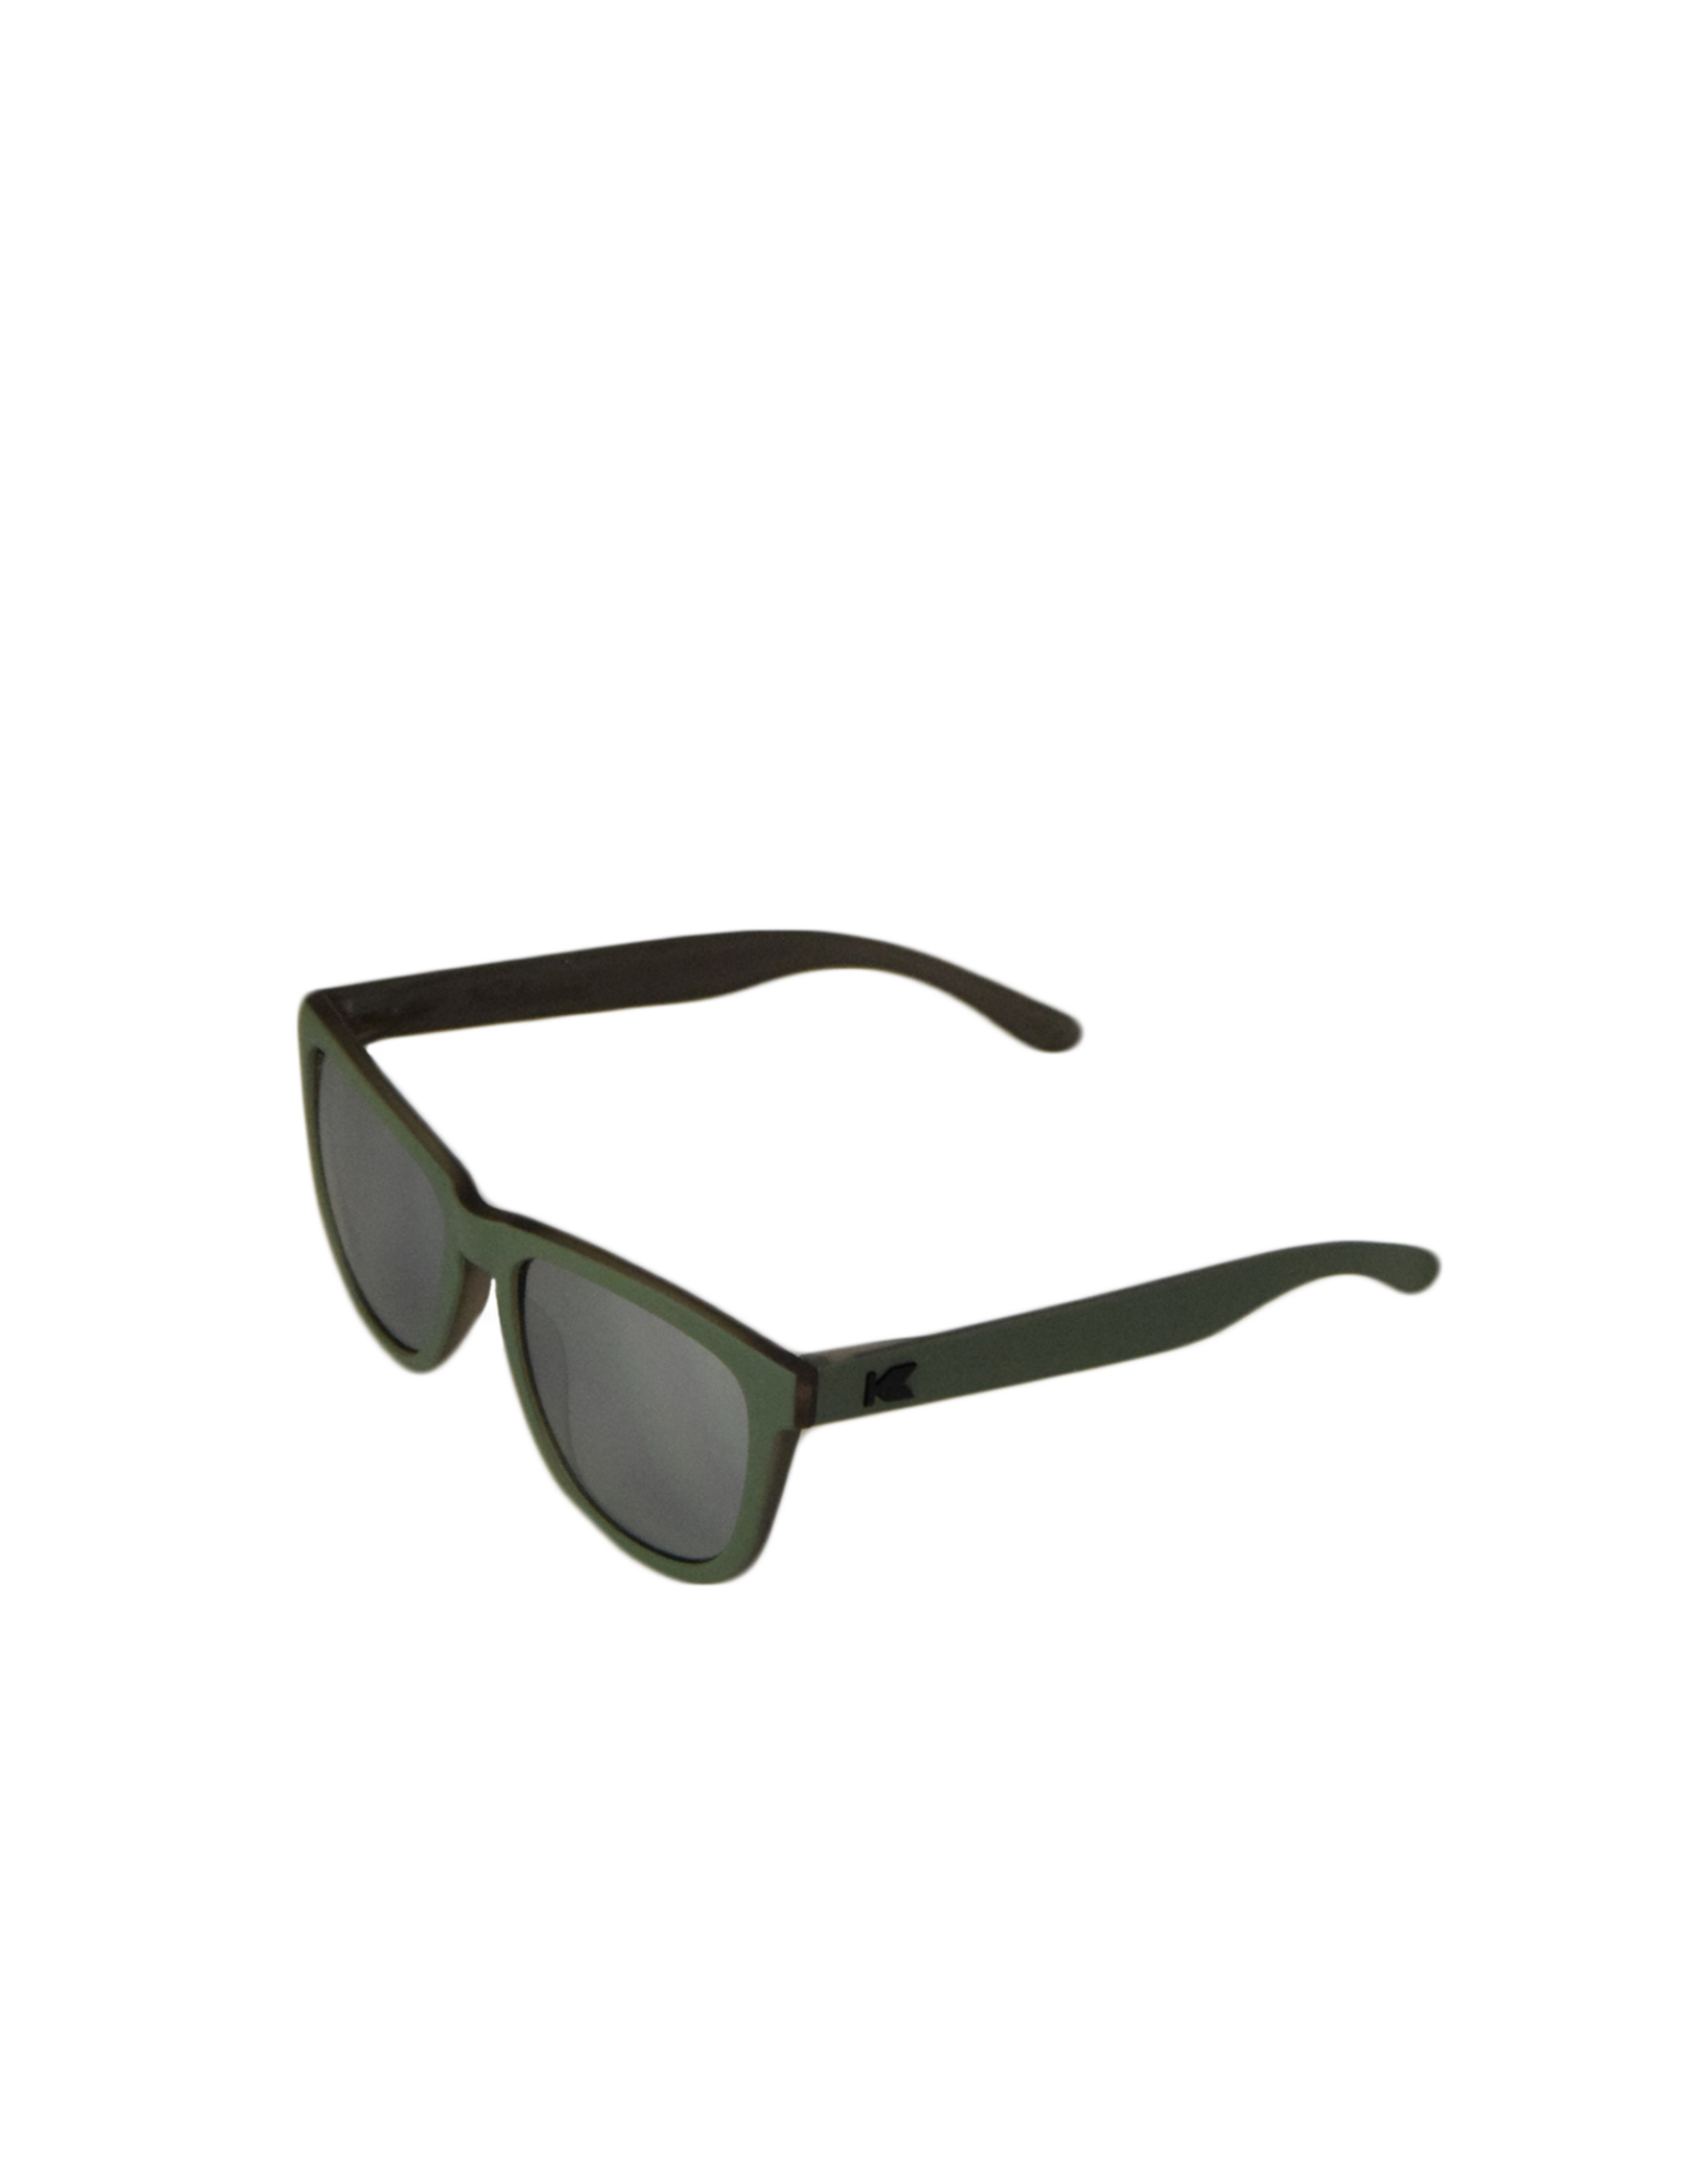 Knockaround Premiums (KNPMSM2147 120) Battleship